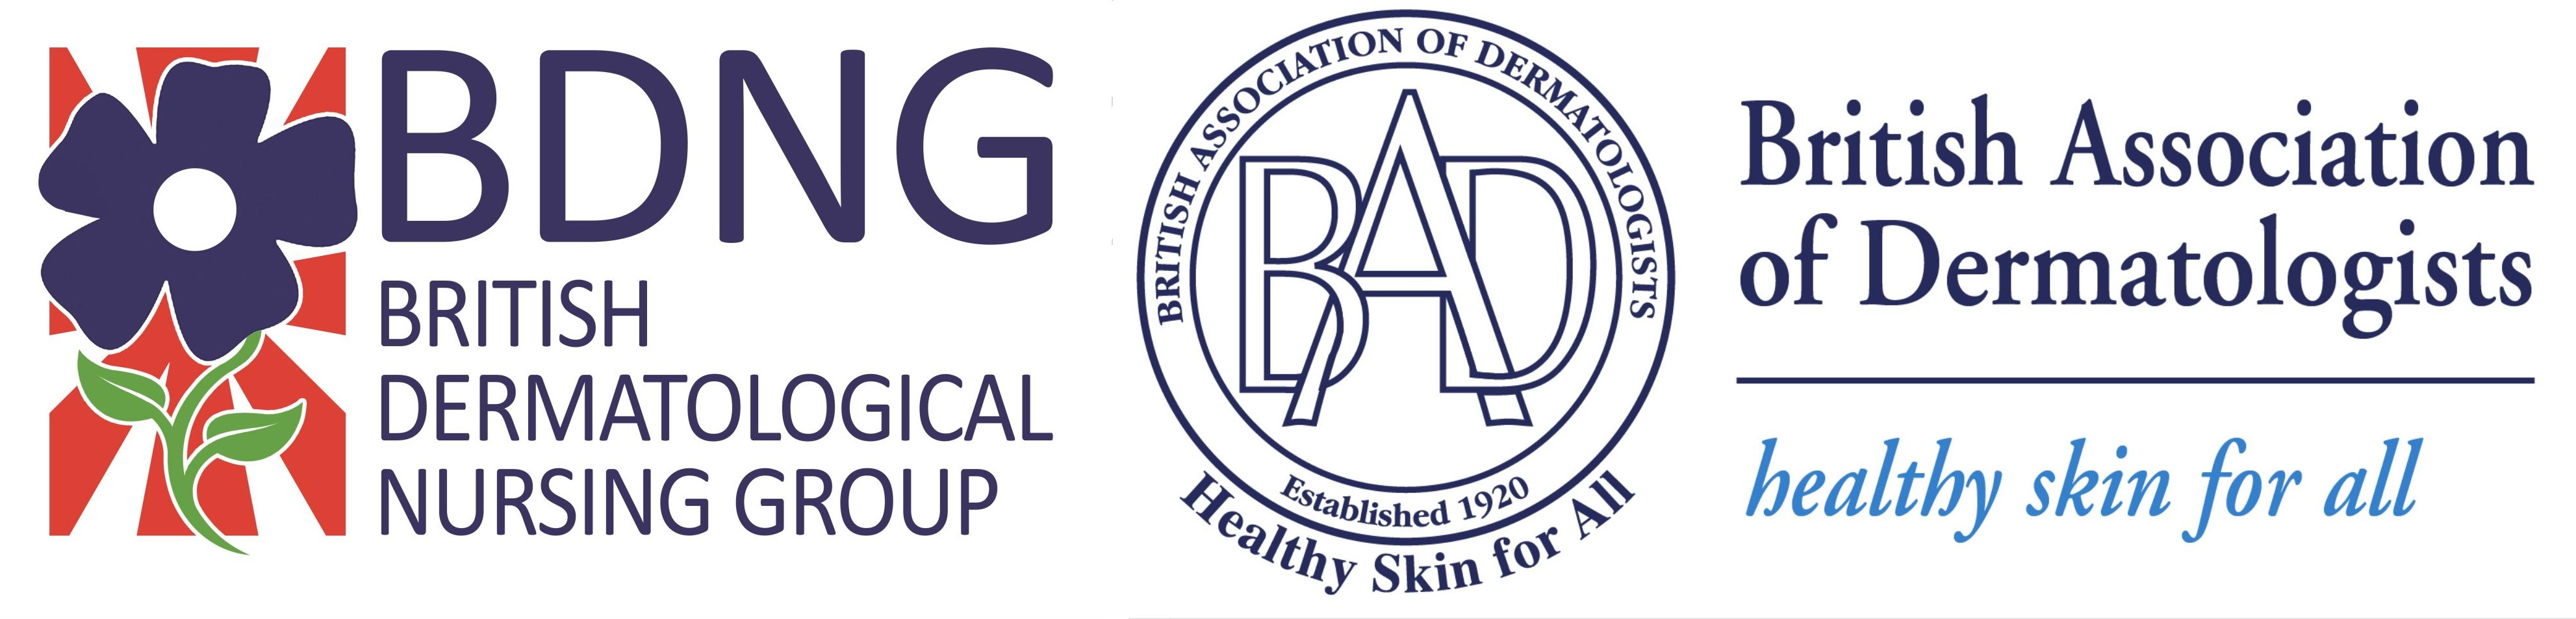 "<div style=""text-align: center;"">This survey has been designed by the British Dermatological Nursing Group (BDNG) as part of the British Association of Dermatologist (BAD) Education Board Nursing Workstream.  </div>"